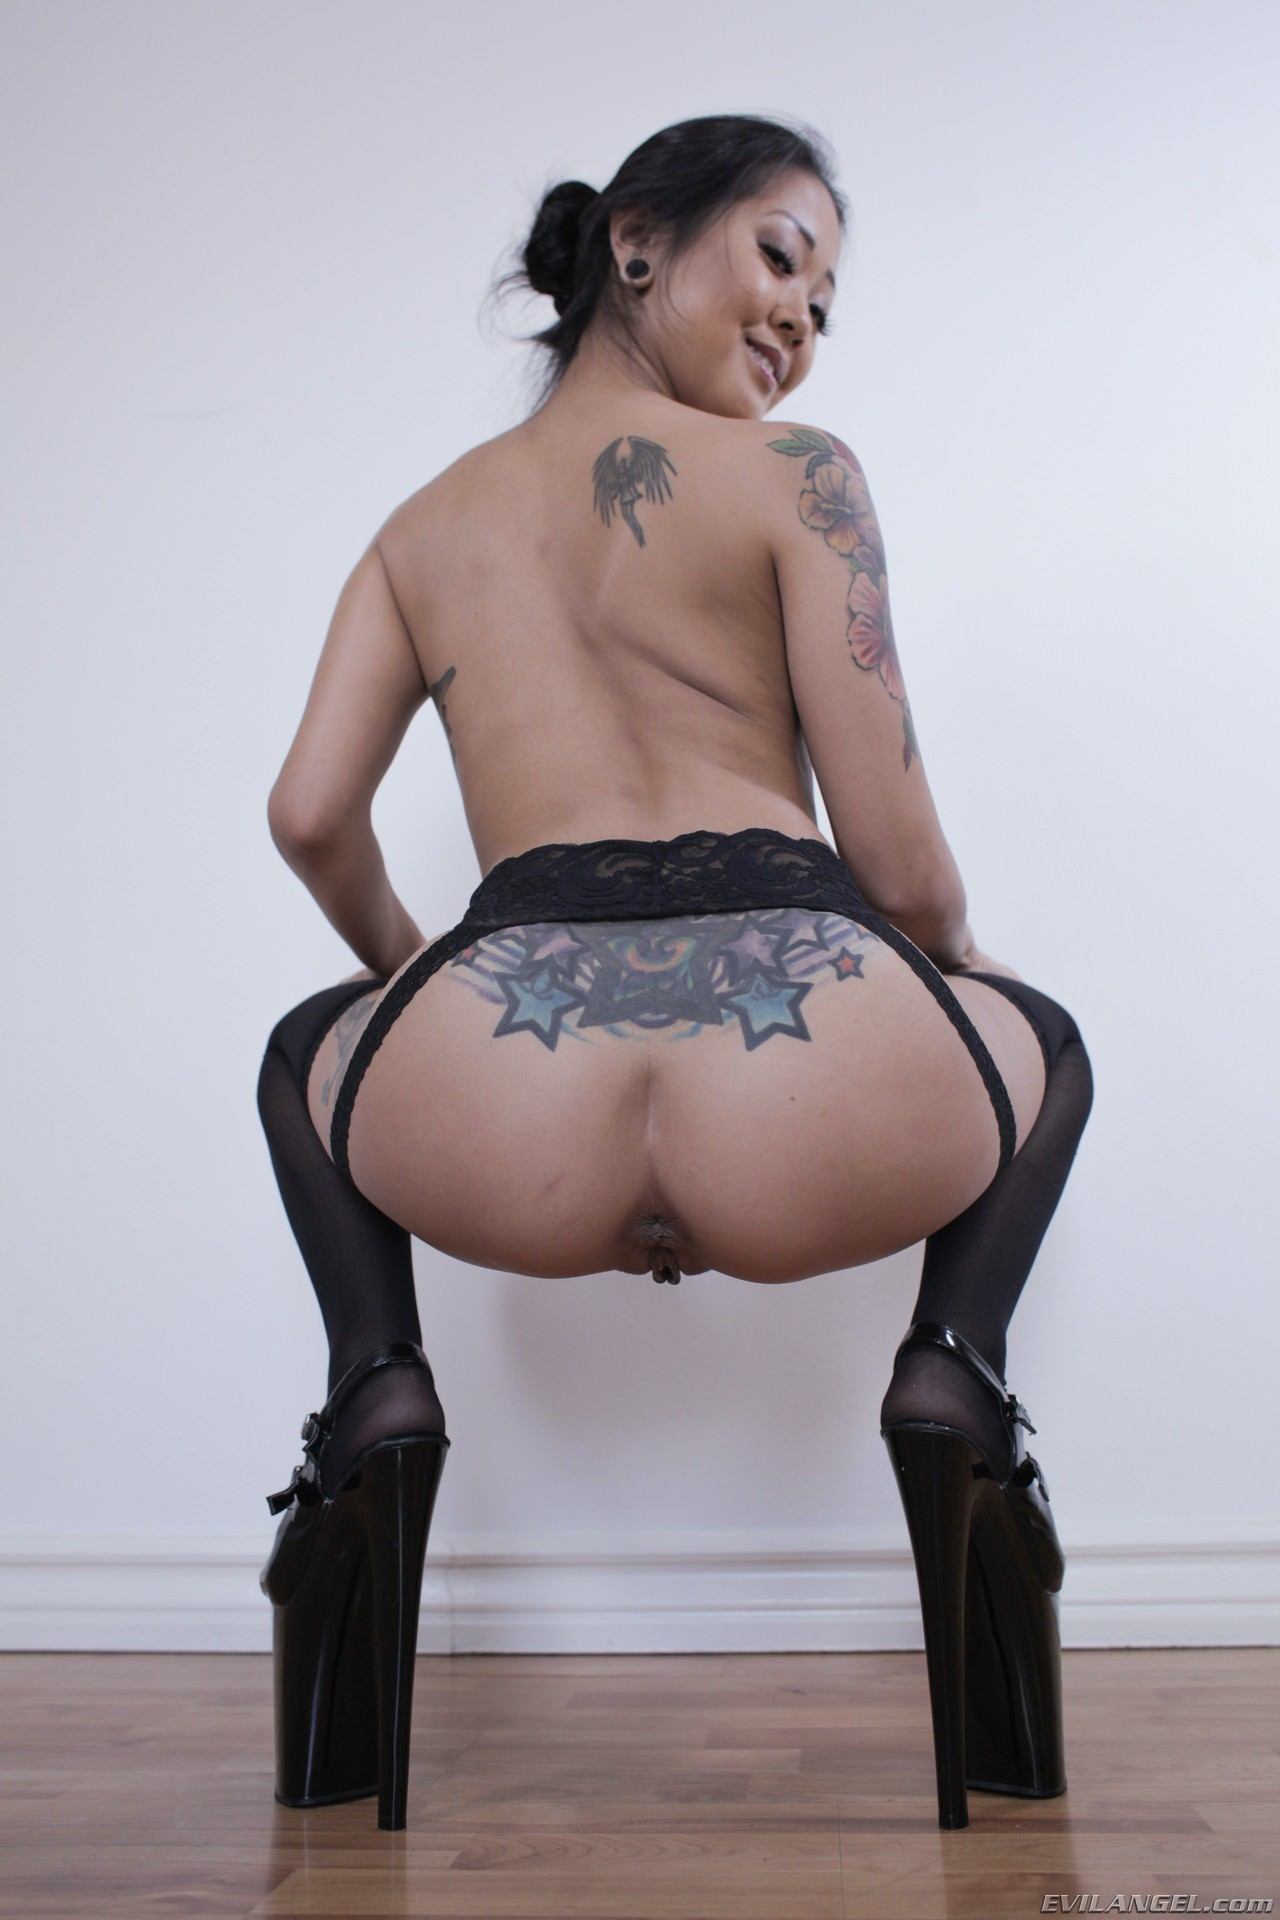 showing porn images for fem porn #SayaSong #Snazzy #sexy #hot #beautiful #petite  #brunette #skinny #asian #tinytits #tattoos #lingerie #heels #sitonmyface